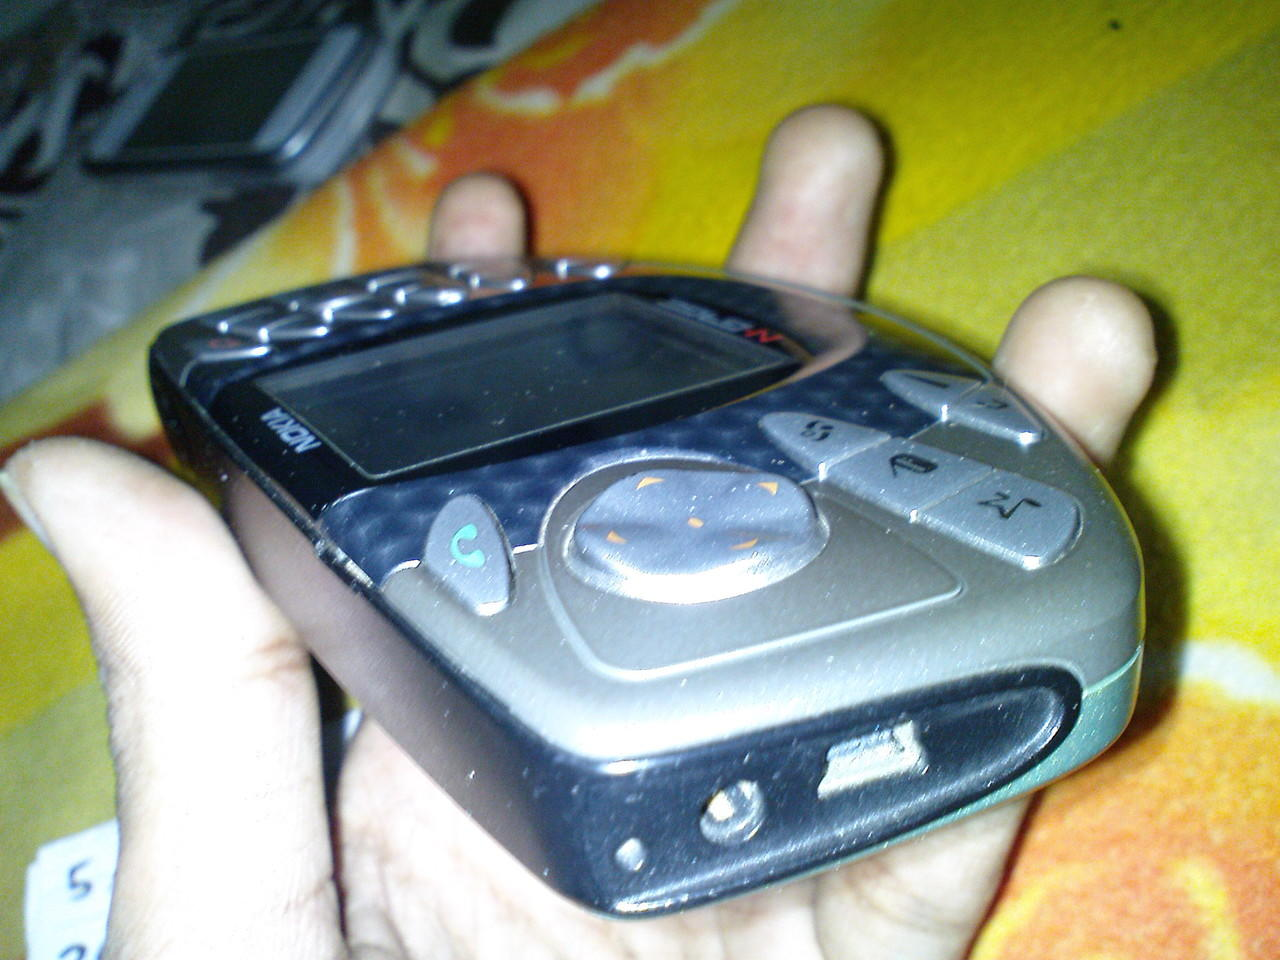 NOKIA NGAGE CLASSIC MINT CONDITIONT (RARE)